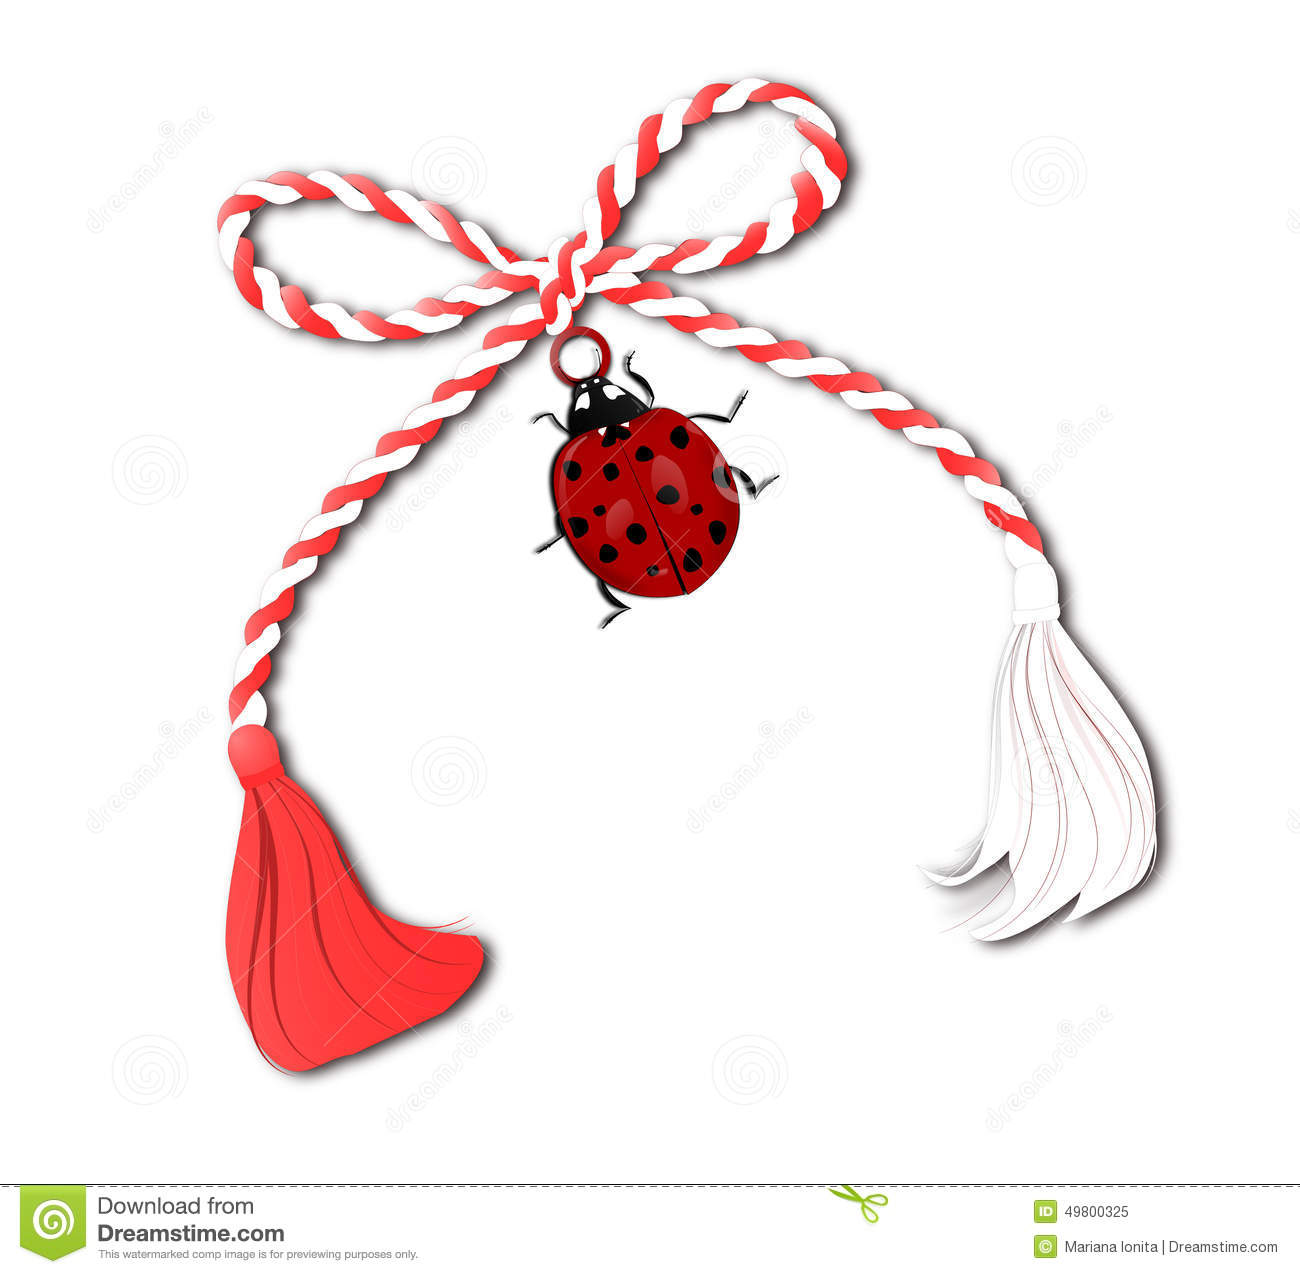 Martisor Stock Photos, Images, & Pictures.